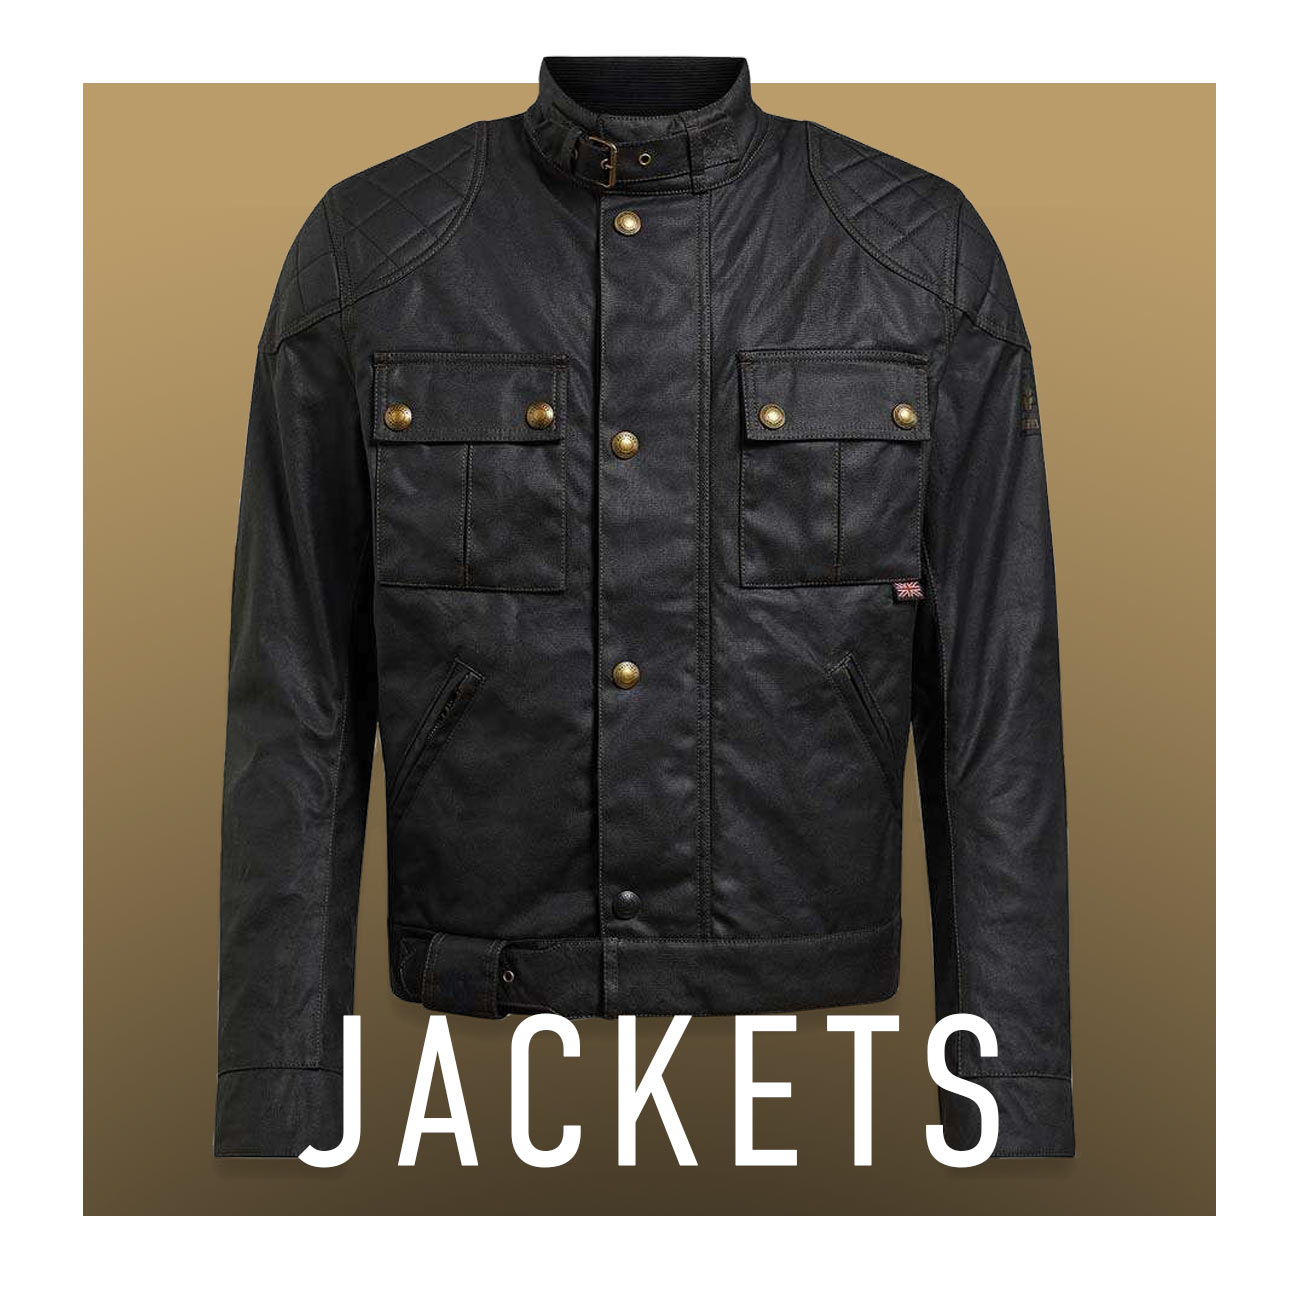 retro motorcycle jackets for cafe racers and scramblers